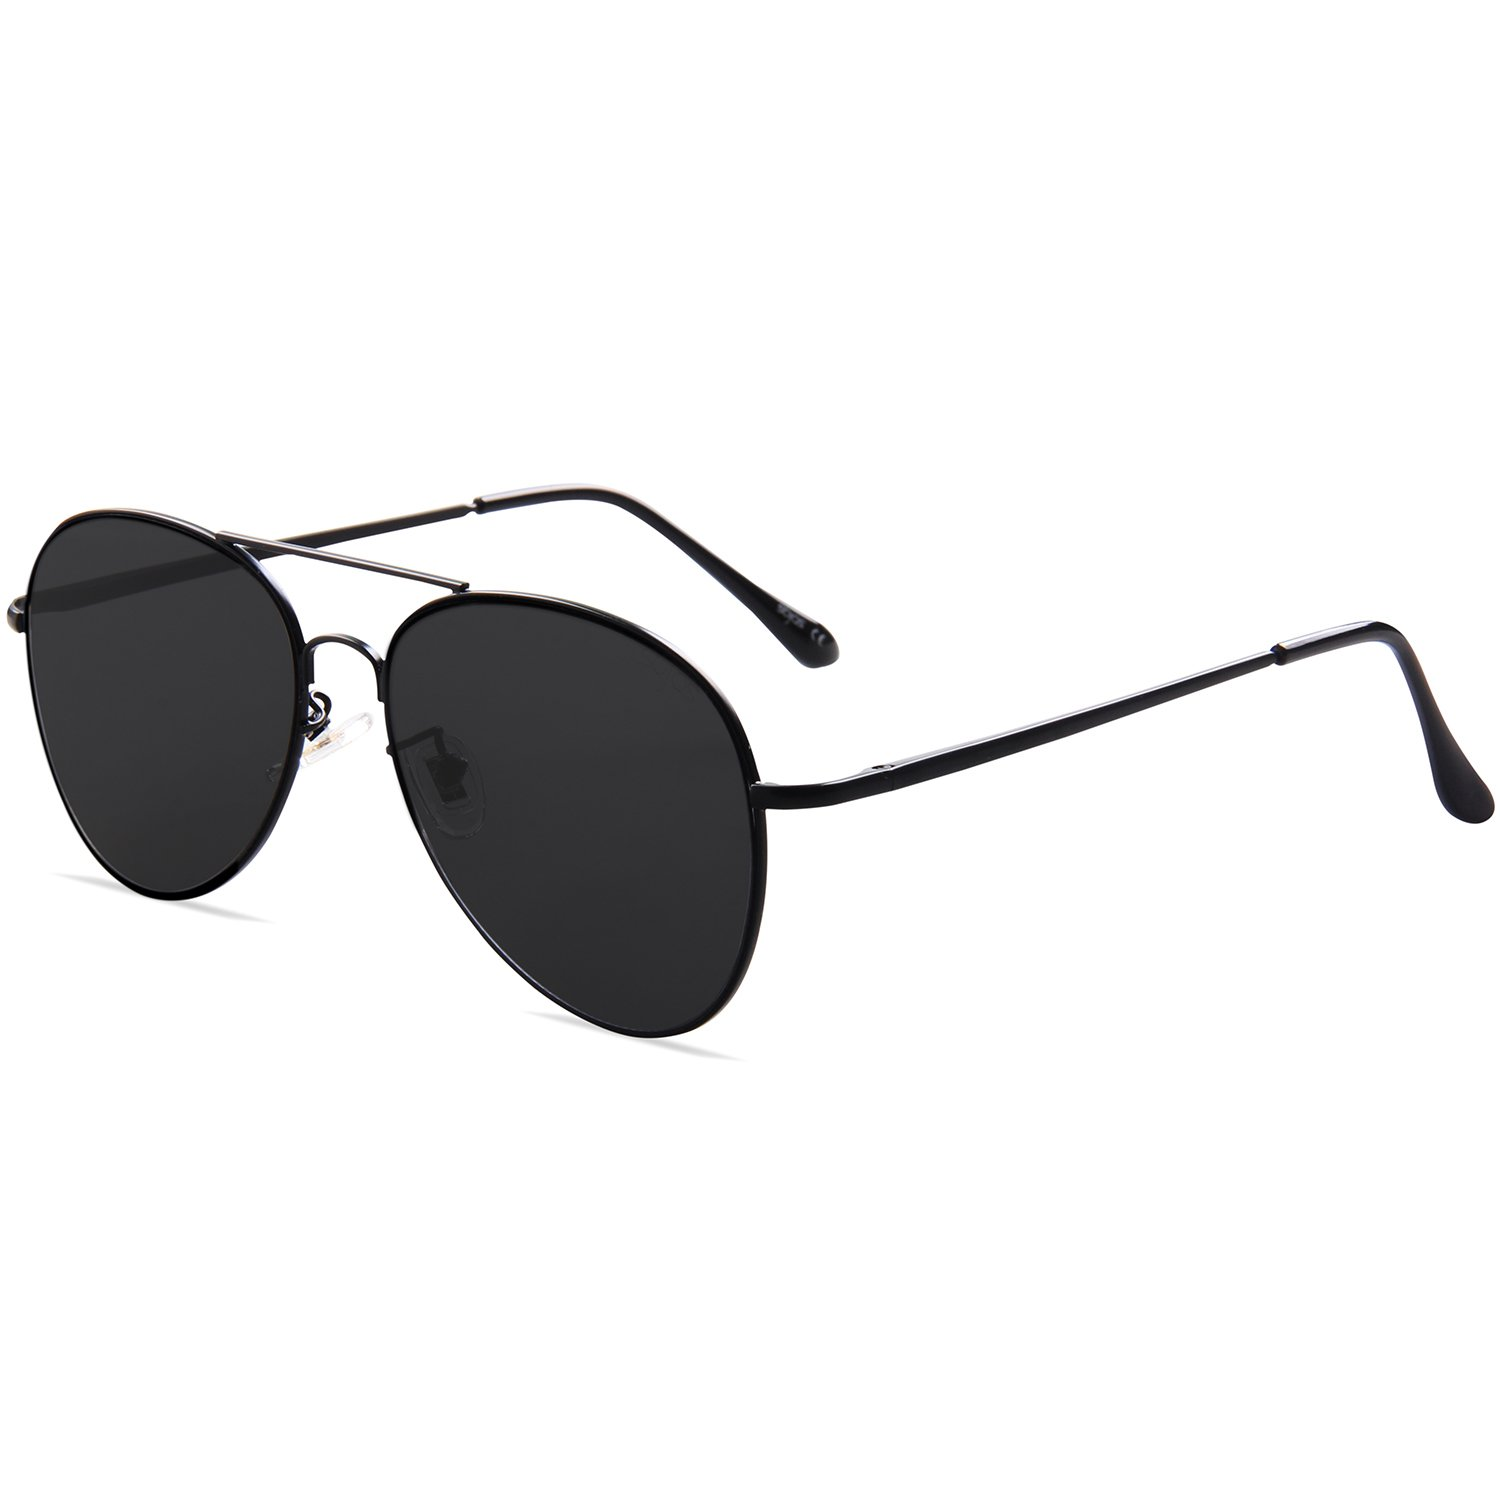 b4b41722727 SojoS Classic Aviator Metal Frame Mirror Lens Sunglasses with Spring Hinges  SJ1030 With Black Frame Grey Lens  Amazon.co.uk  Clothing